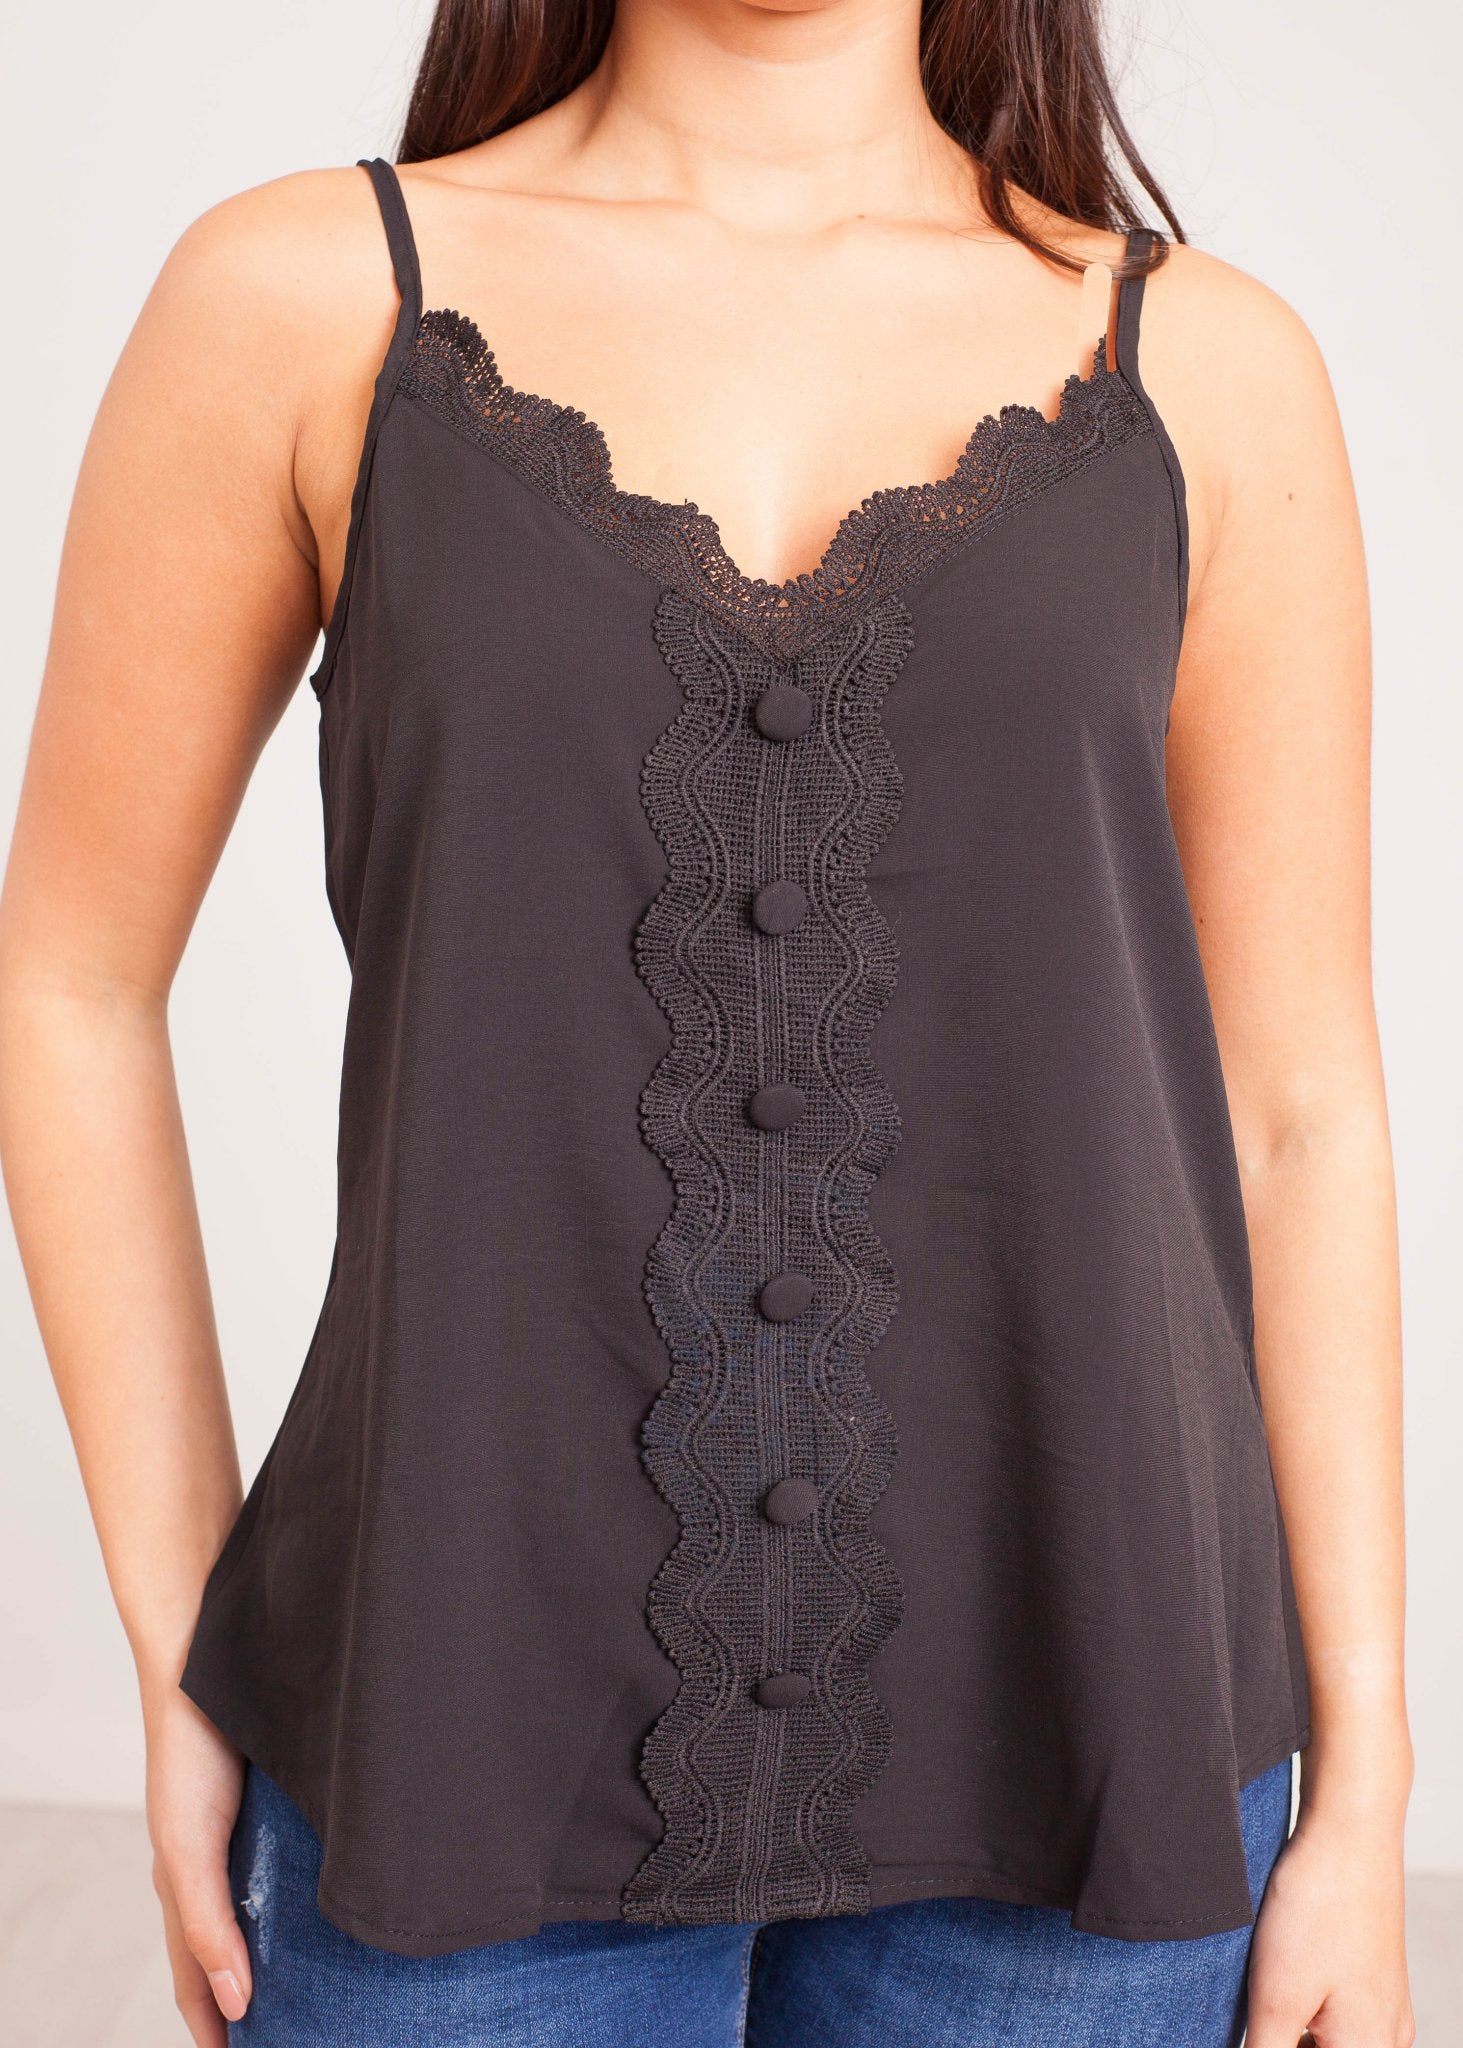 Emilia Black Lace Cami with Buttons - The Walk in Wardrobe